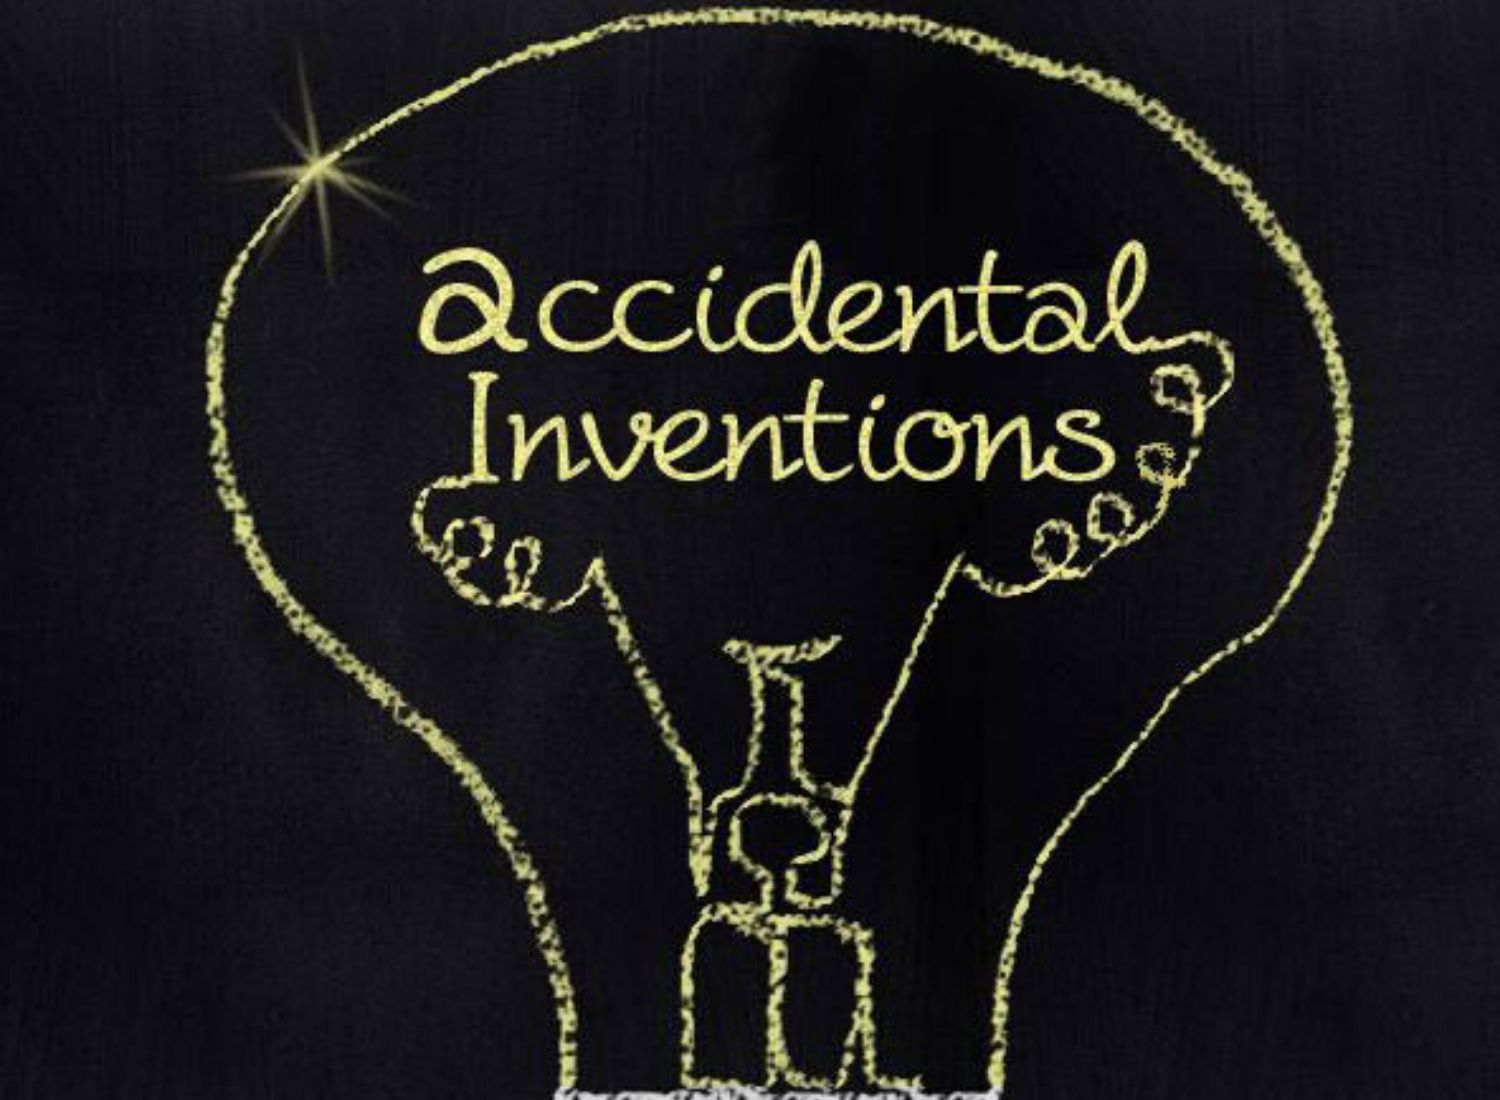 7 Accidental Inventions that changed the world